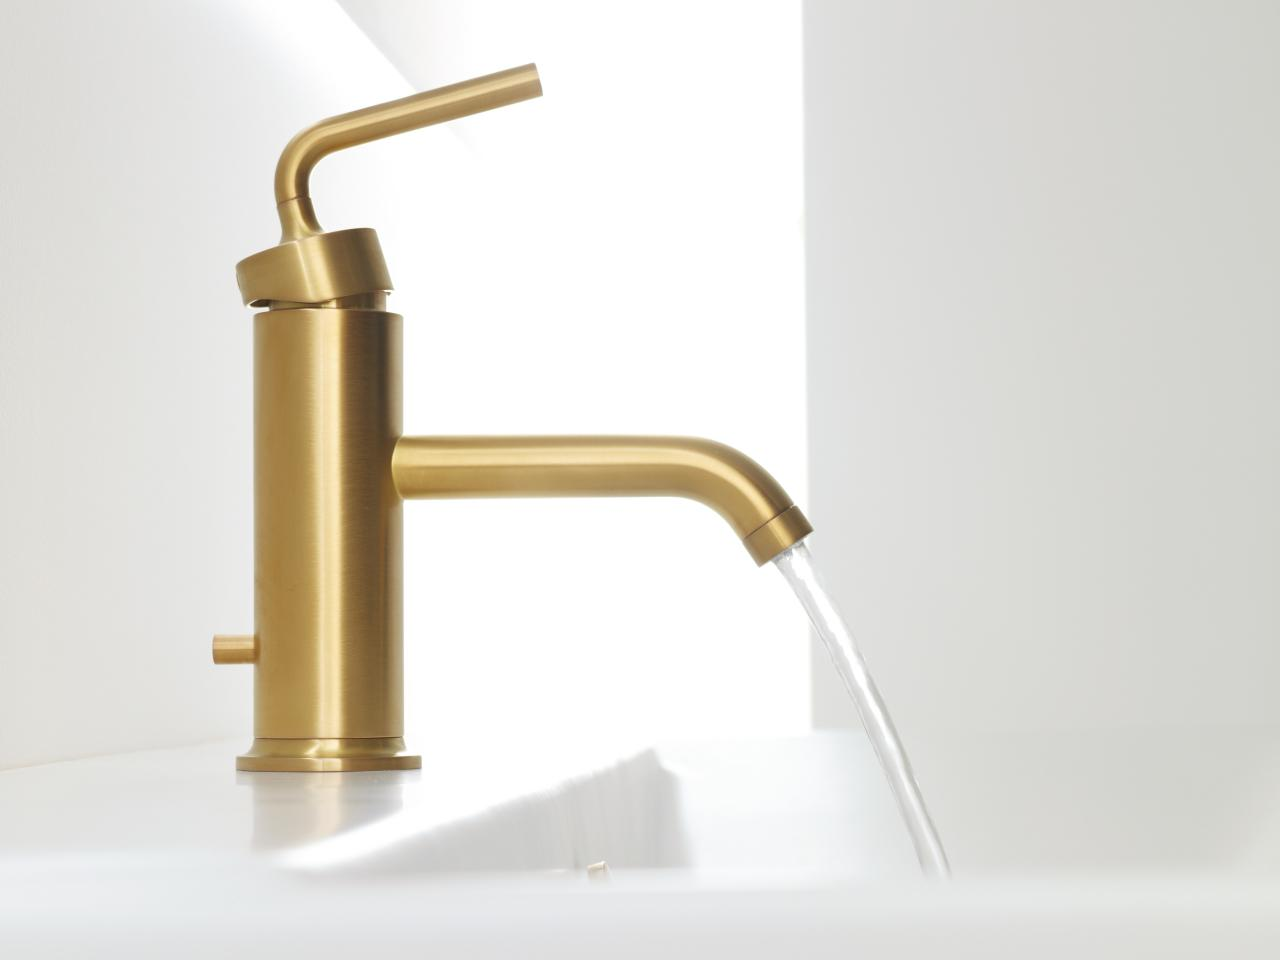 Pleasing Design of Golden Stainless Steel Modern Bathroom Faucets Idea